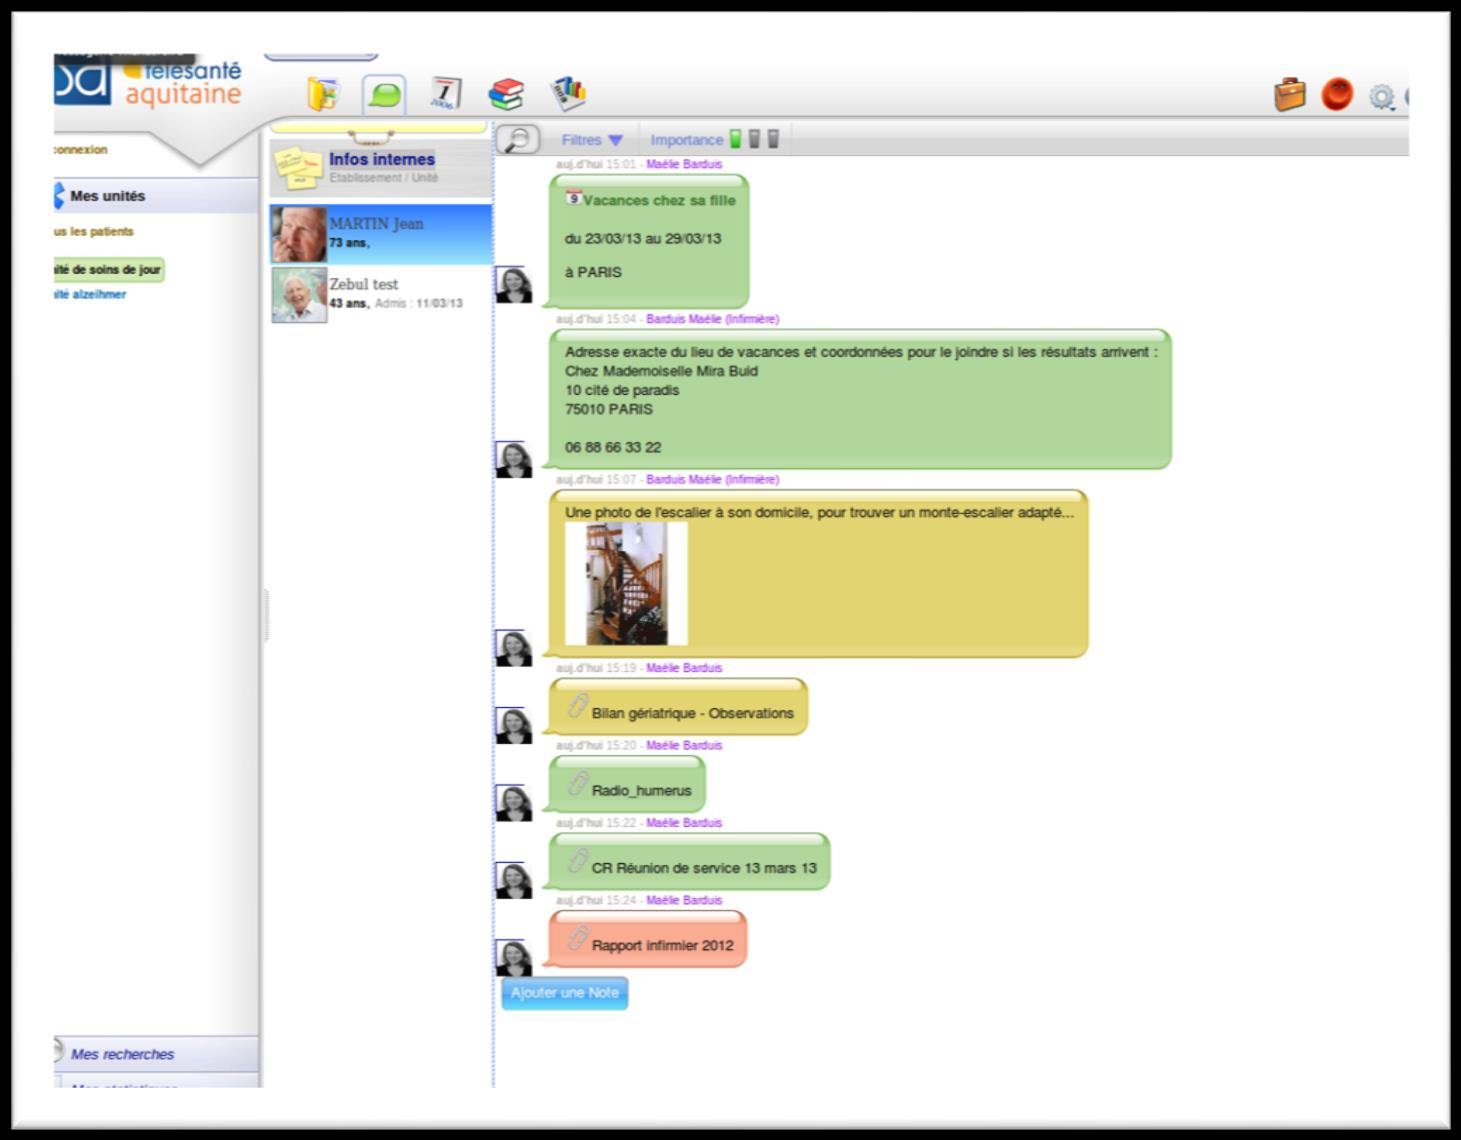 La communication PAR SECTEURS LISTE PATIENTS CHAT